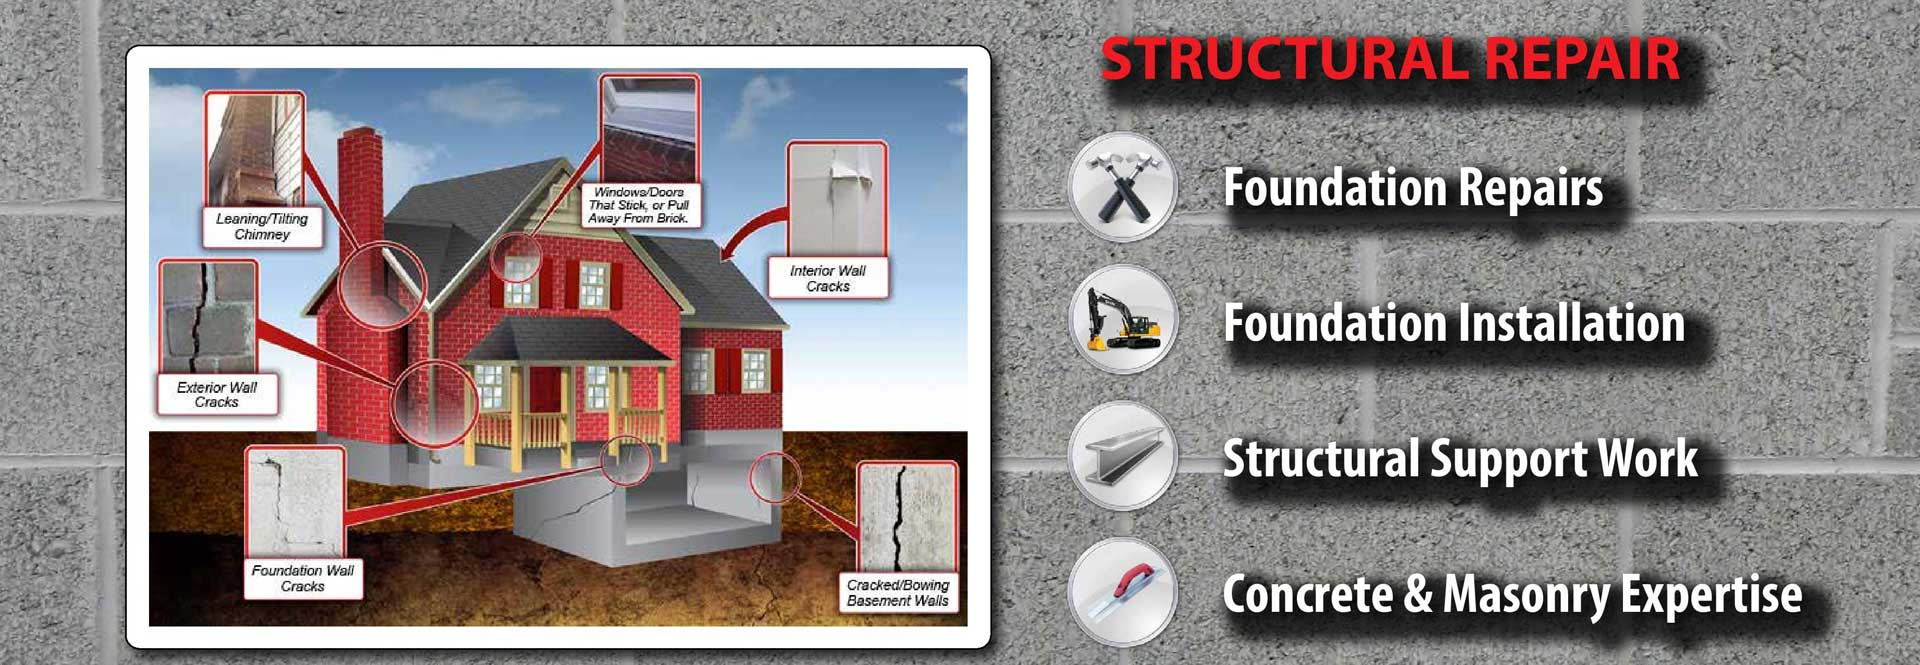 Structural/Foundation Repairs